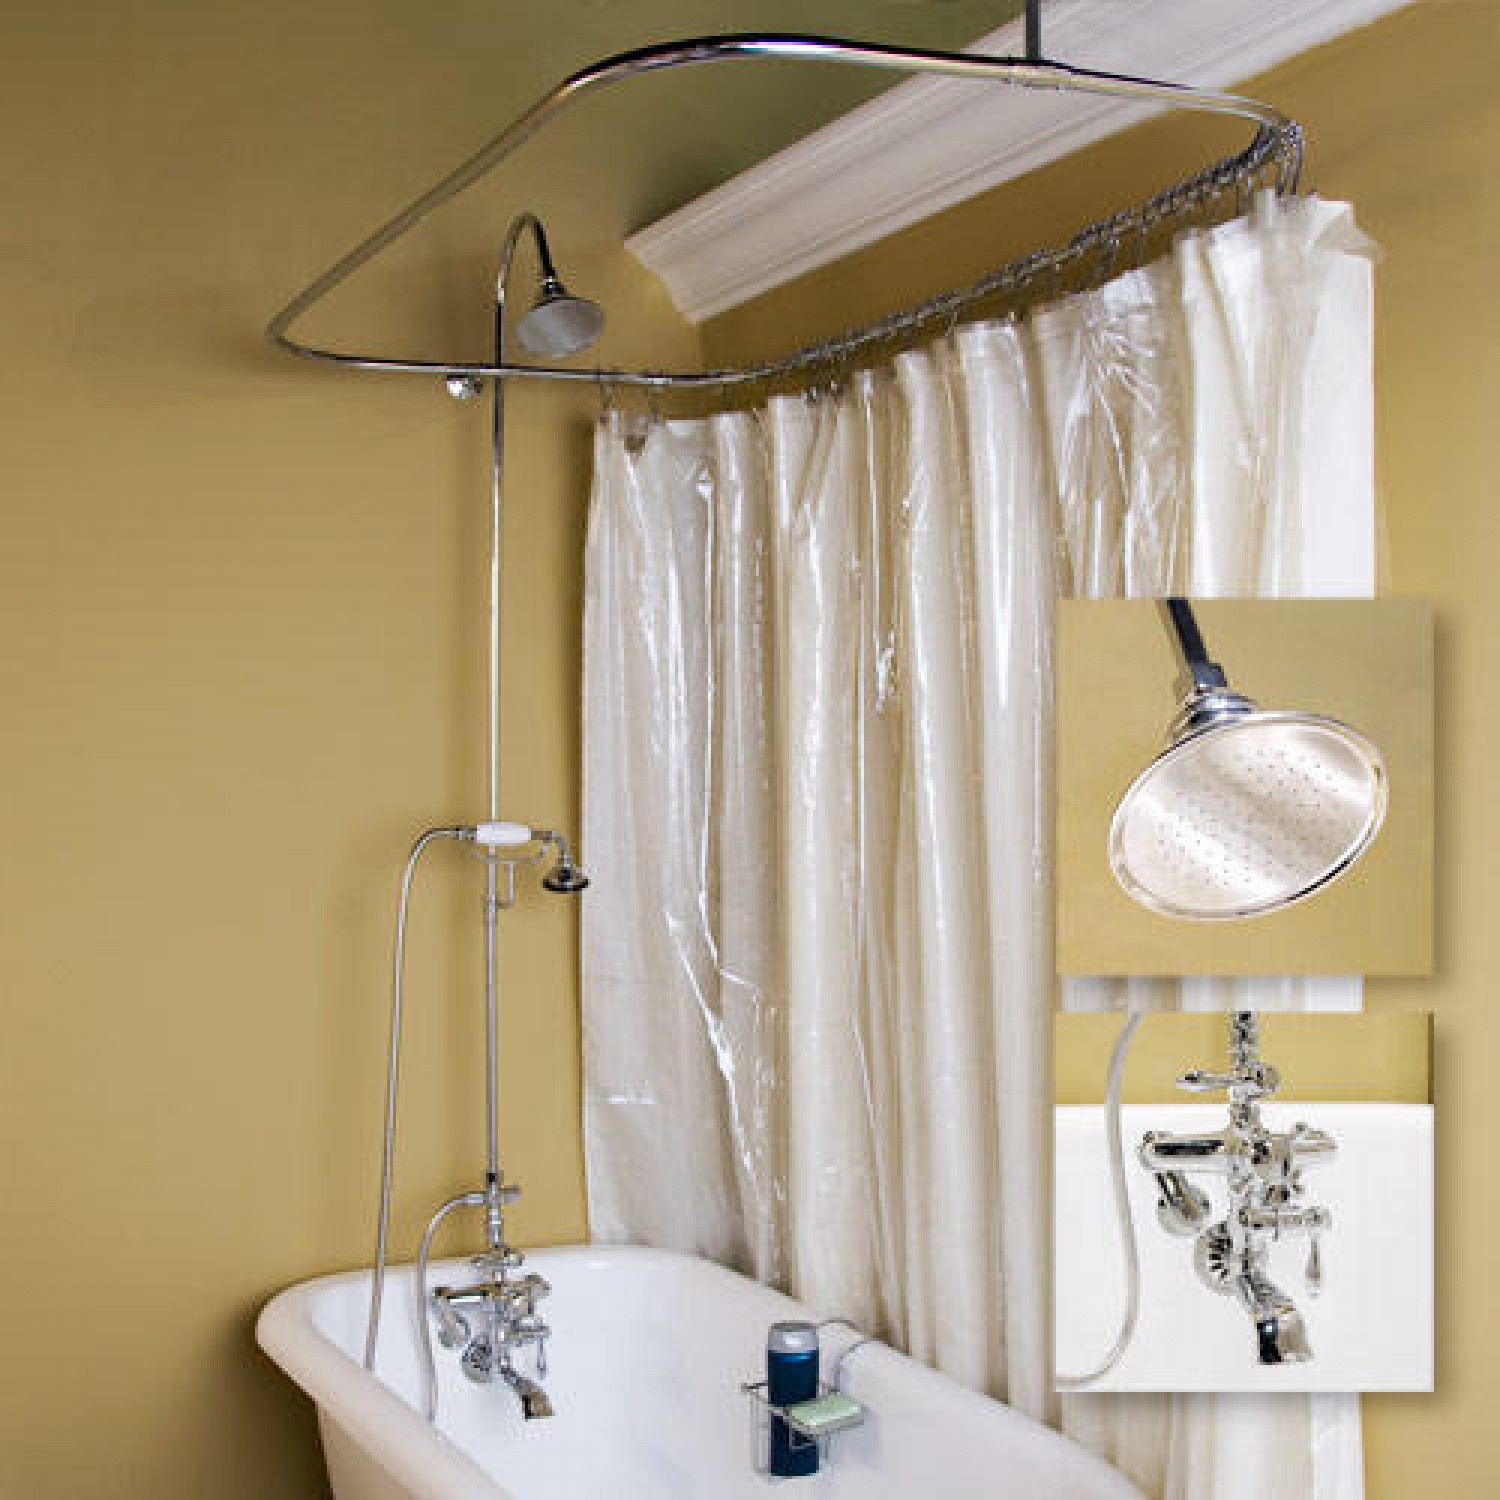 Image of: clawfoot tub shower image